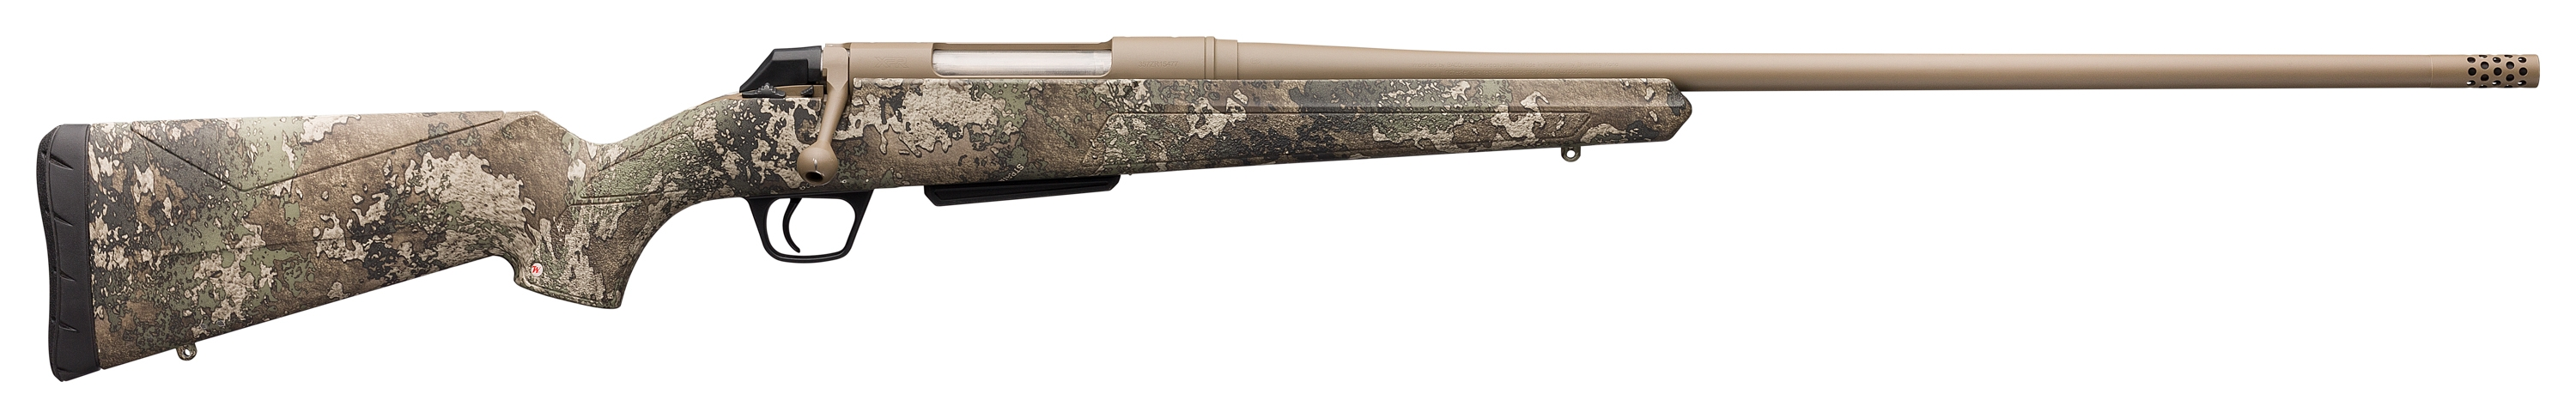 Winchester XPR STRATA MB 6.8 WESTERN